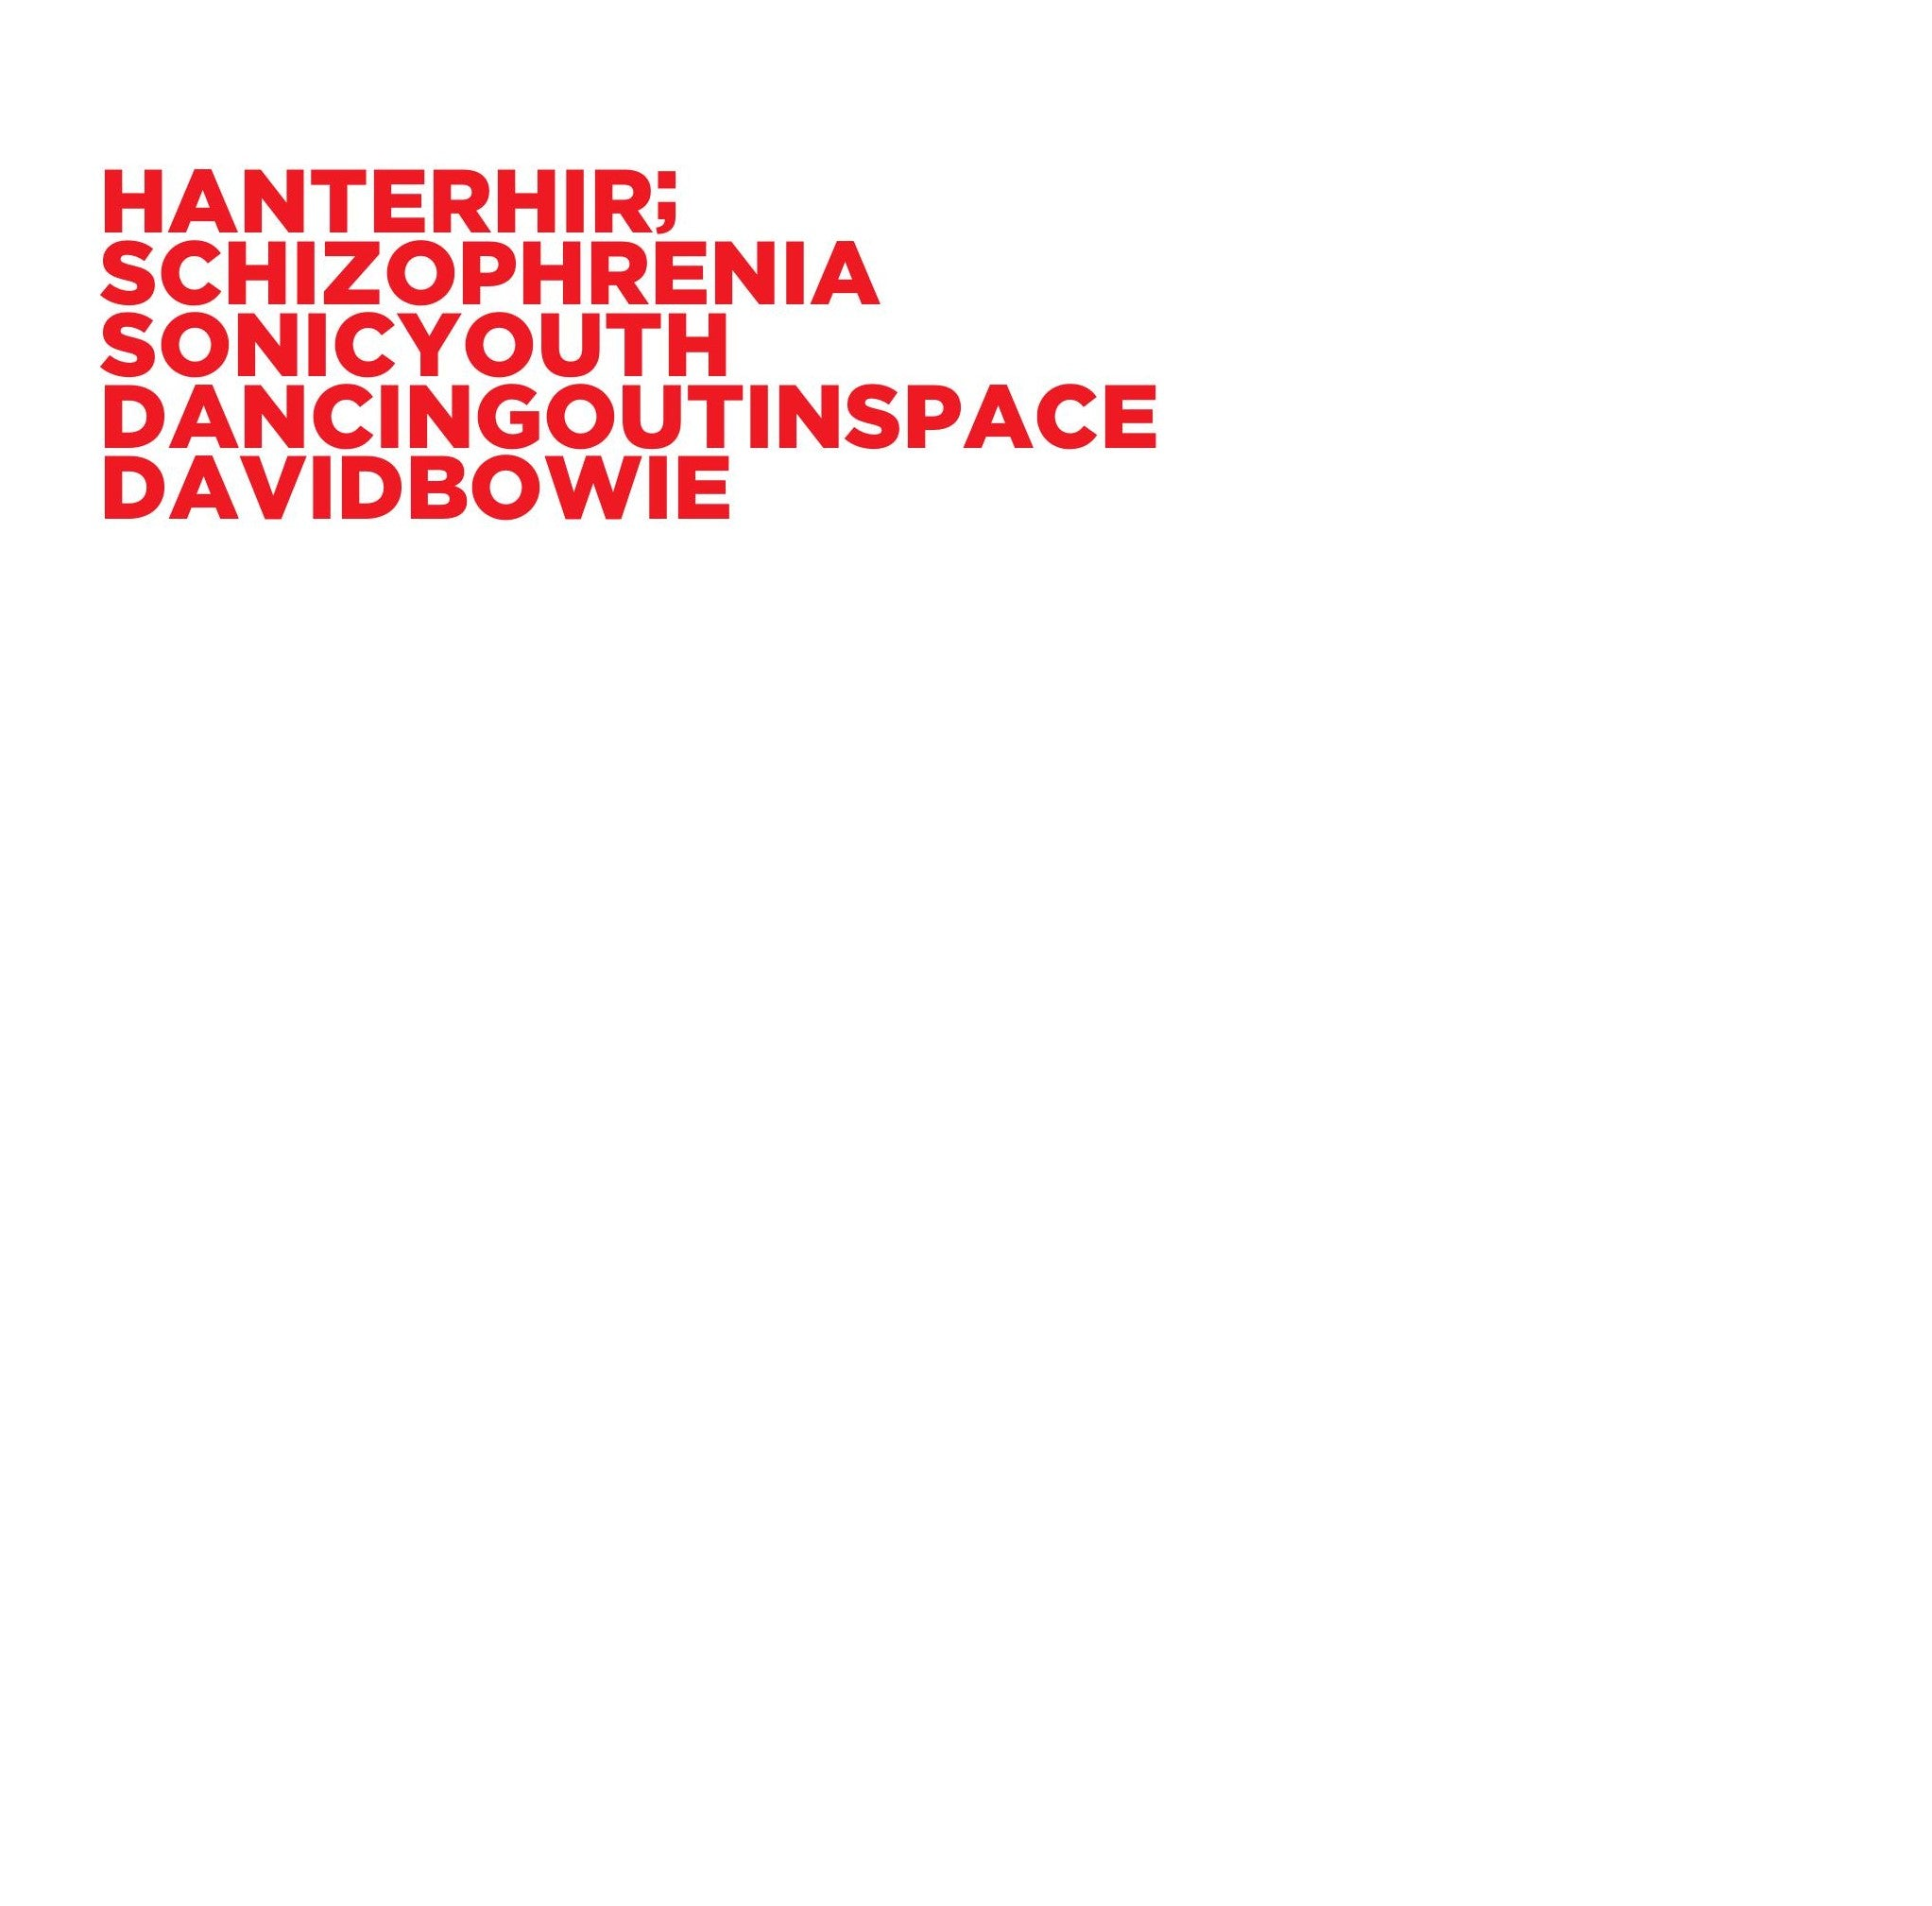 "Hanterhir - Schizophrenia / Dancing out in space (RSD2020 Drop One) 7"" Colour Vinyl Record"